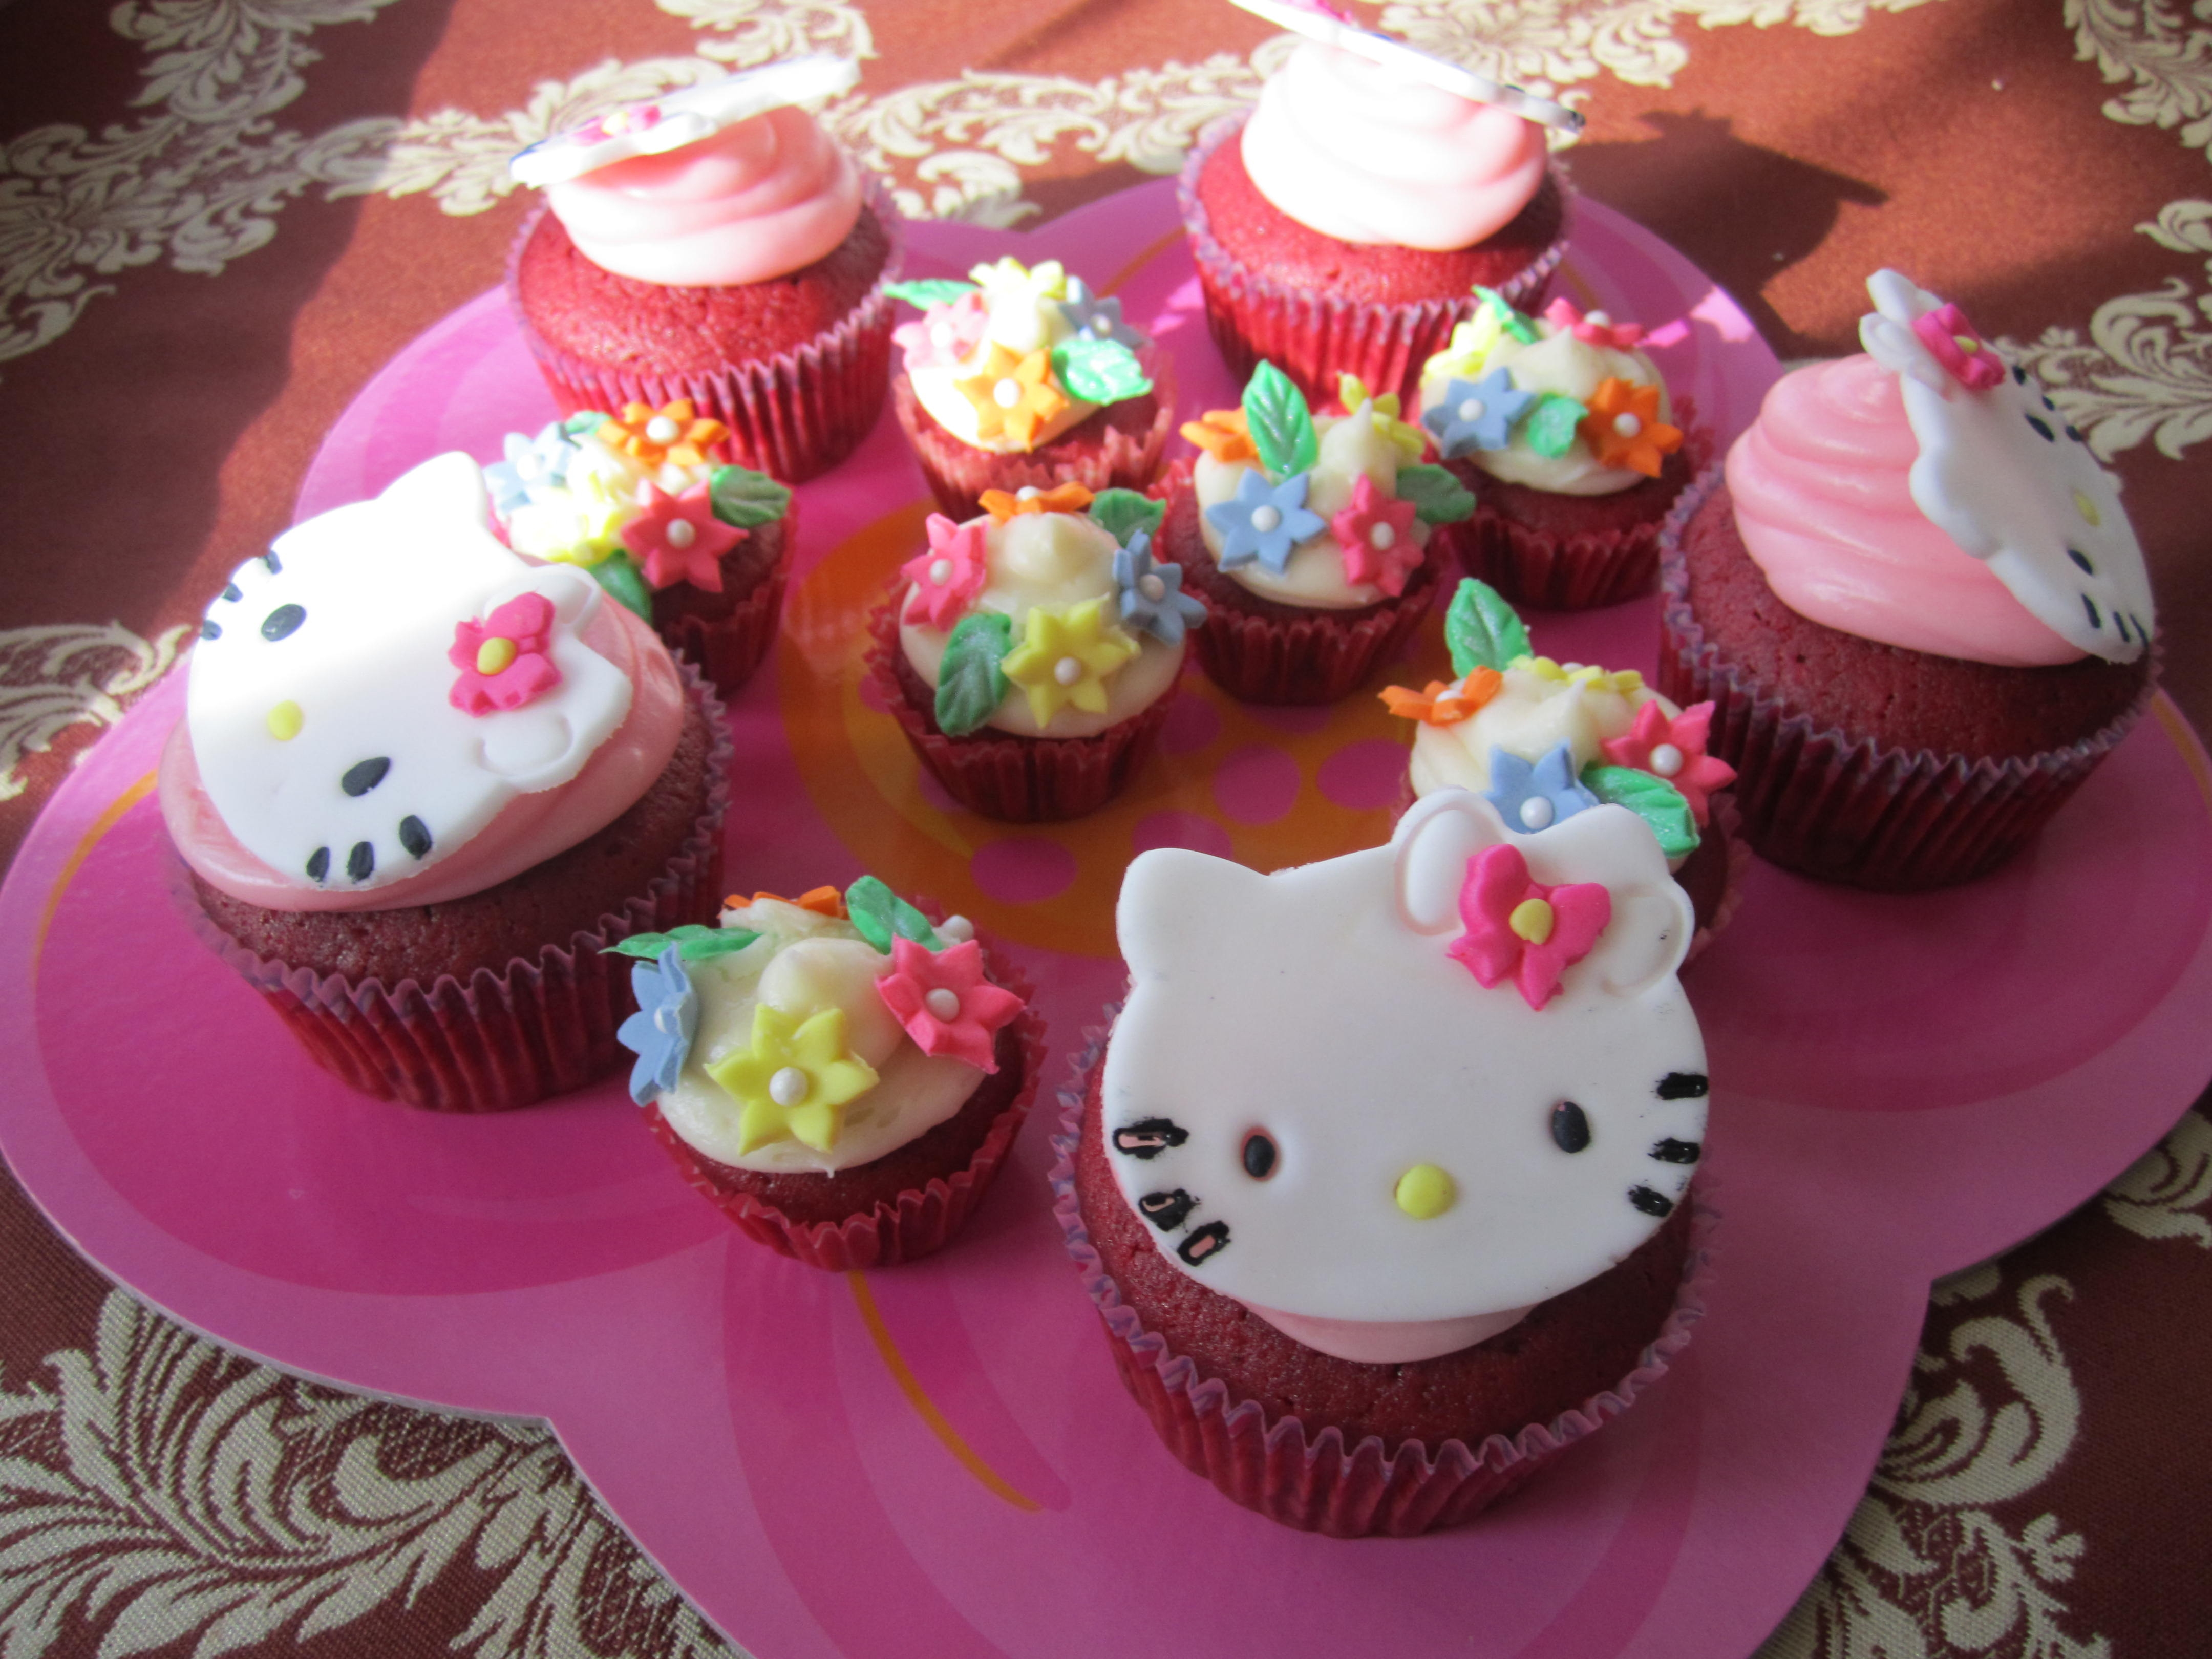 Red velvet with hello kitty made of fondant